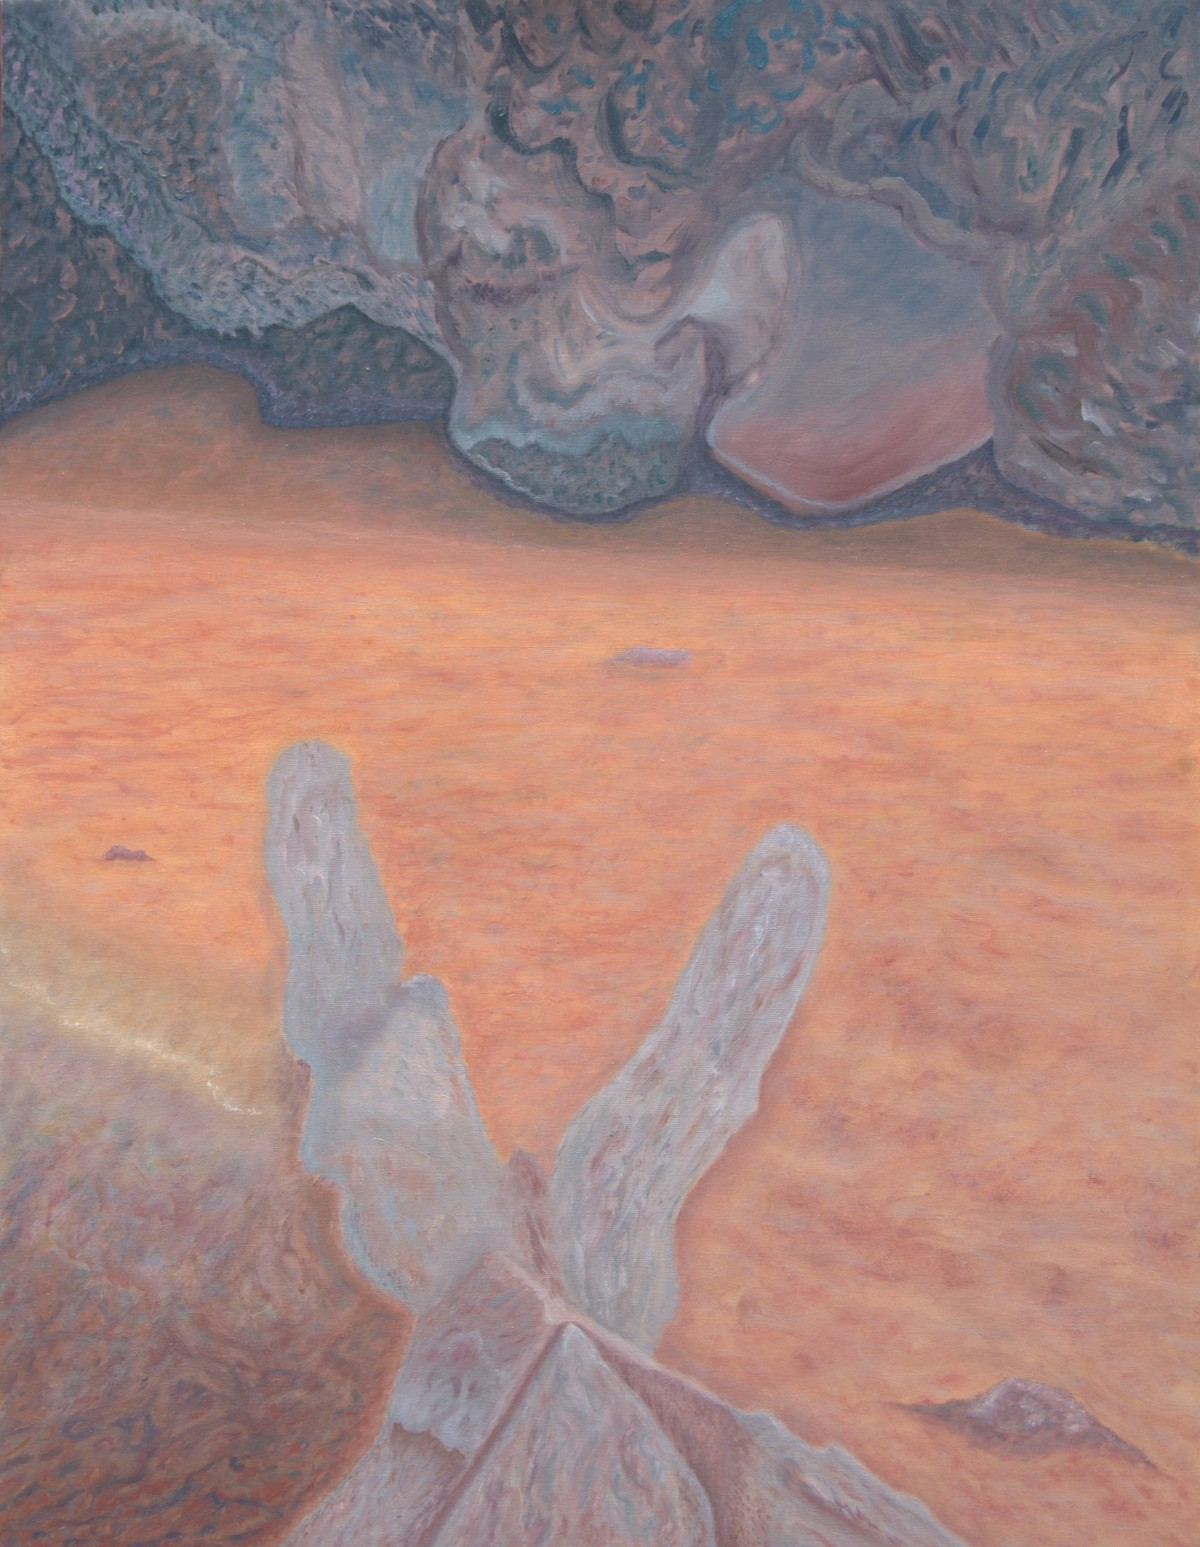 15 (oil on canvas, 70x90 cm), 2009-10